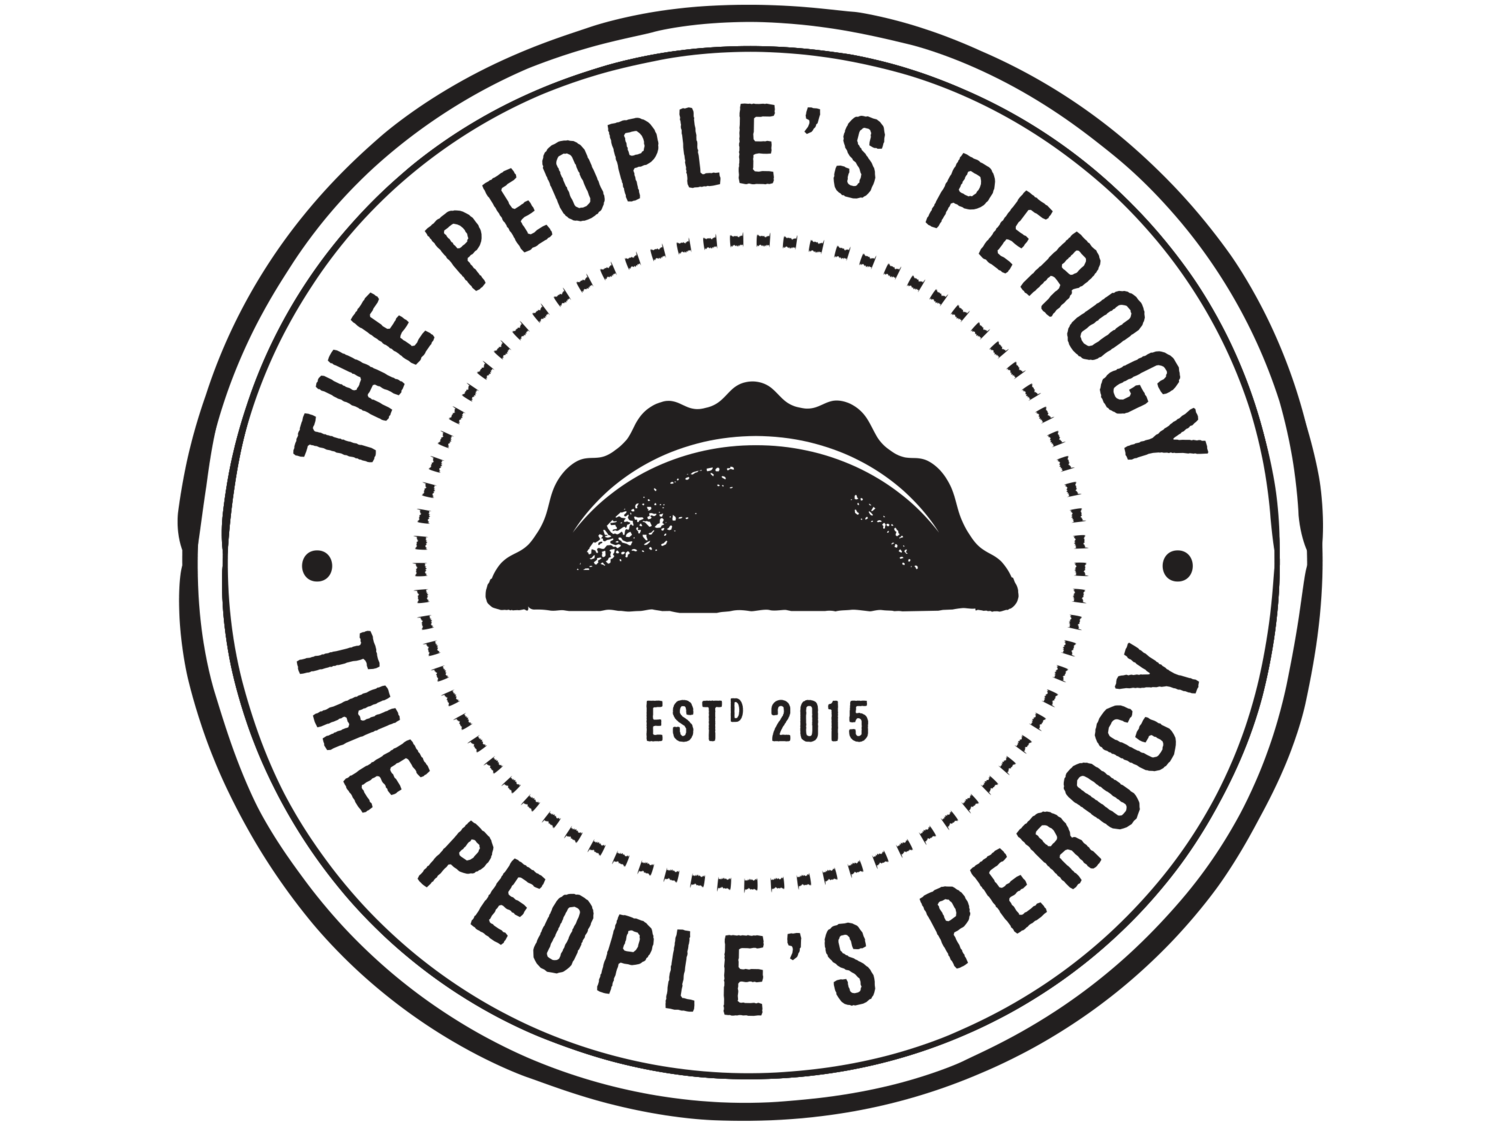 The People's Perogy